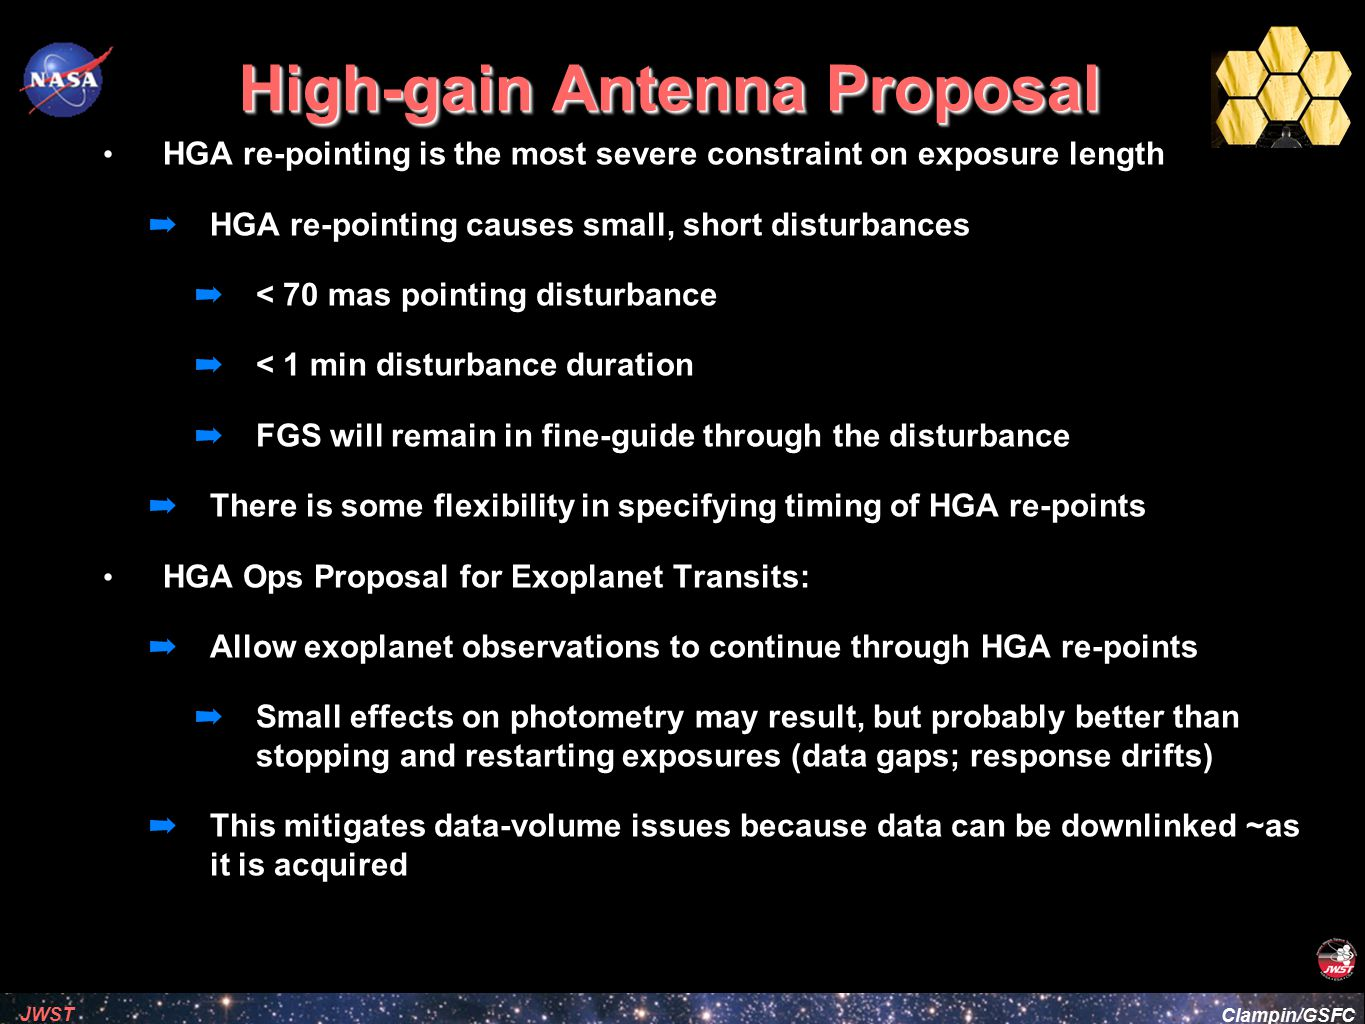 Clampin/GSFC JWST High-gain Antenna Proposal HGA re-pointing is the most severe constraint on exposure length ➡ HGA re-pointing causes small, short di